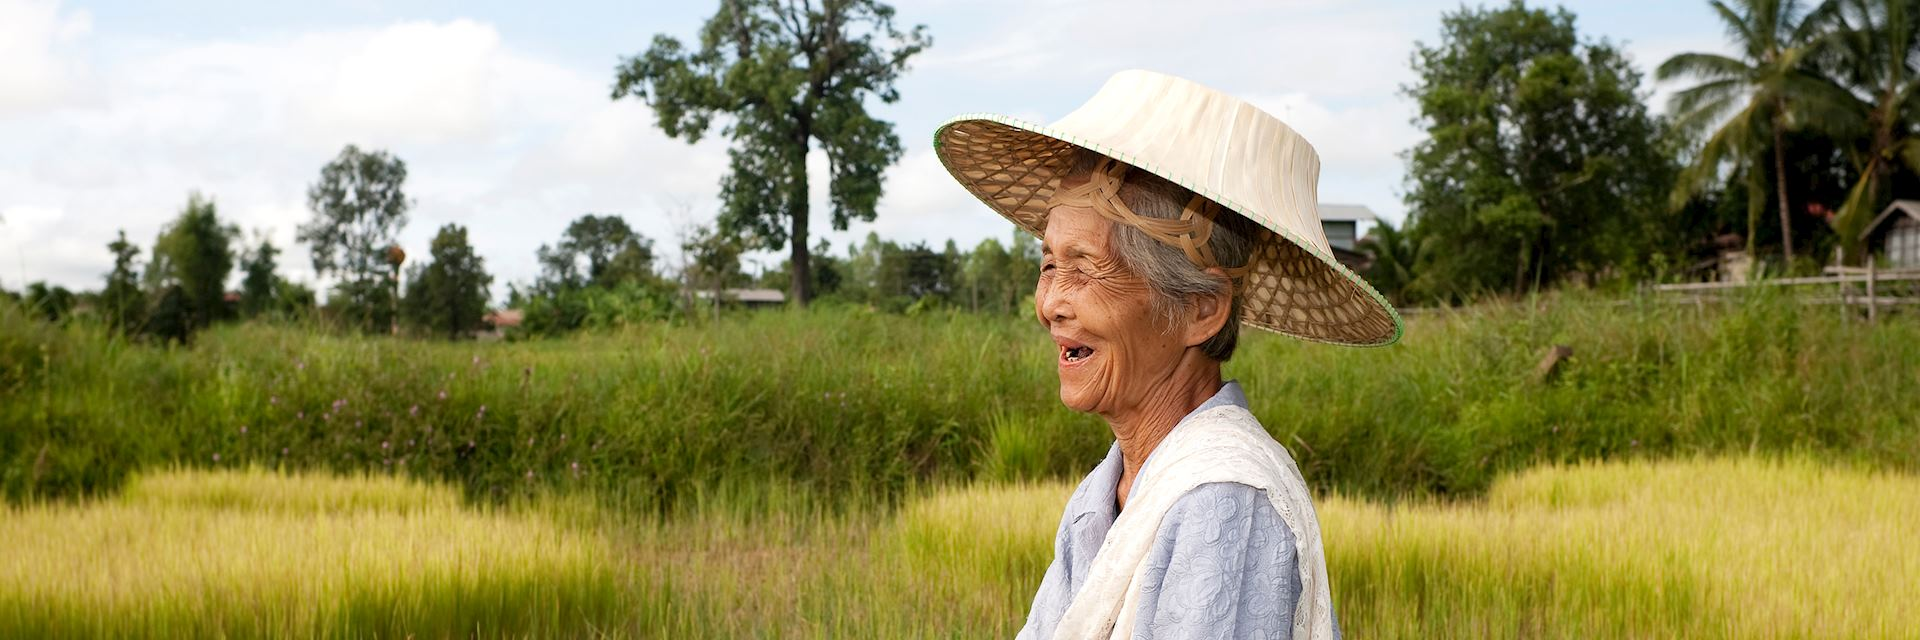 local woman working in a rice field, Thailand